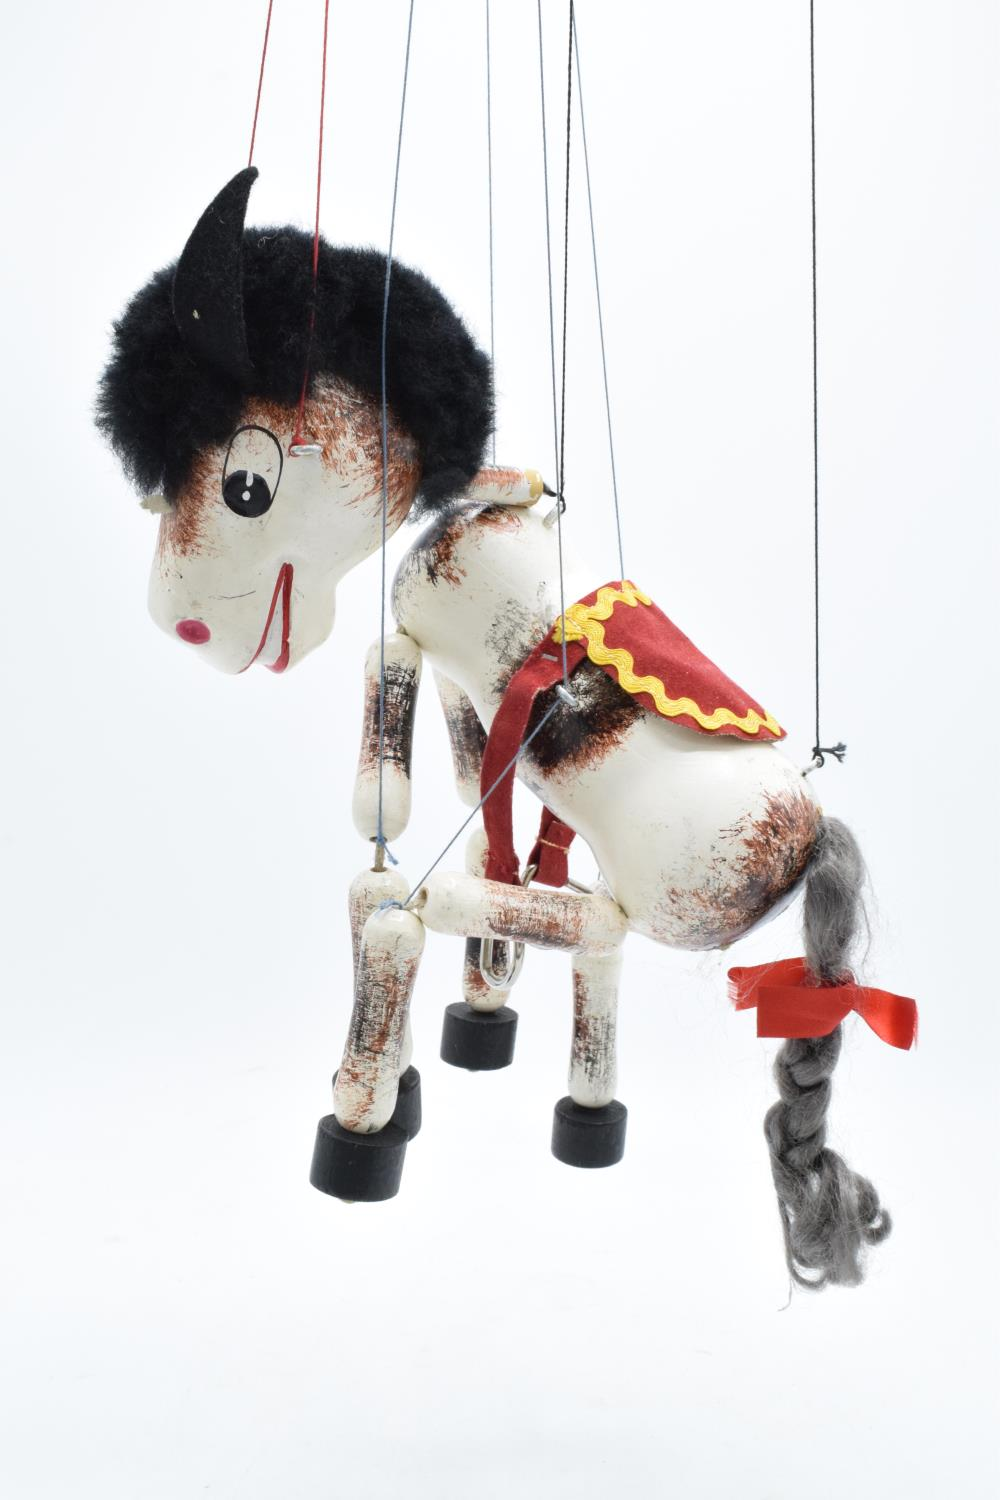 A mid 20th century children's toy Pelham Puppet Muffin the Mule. In well used condition. A great